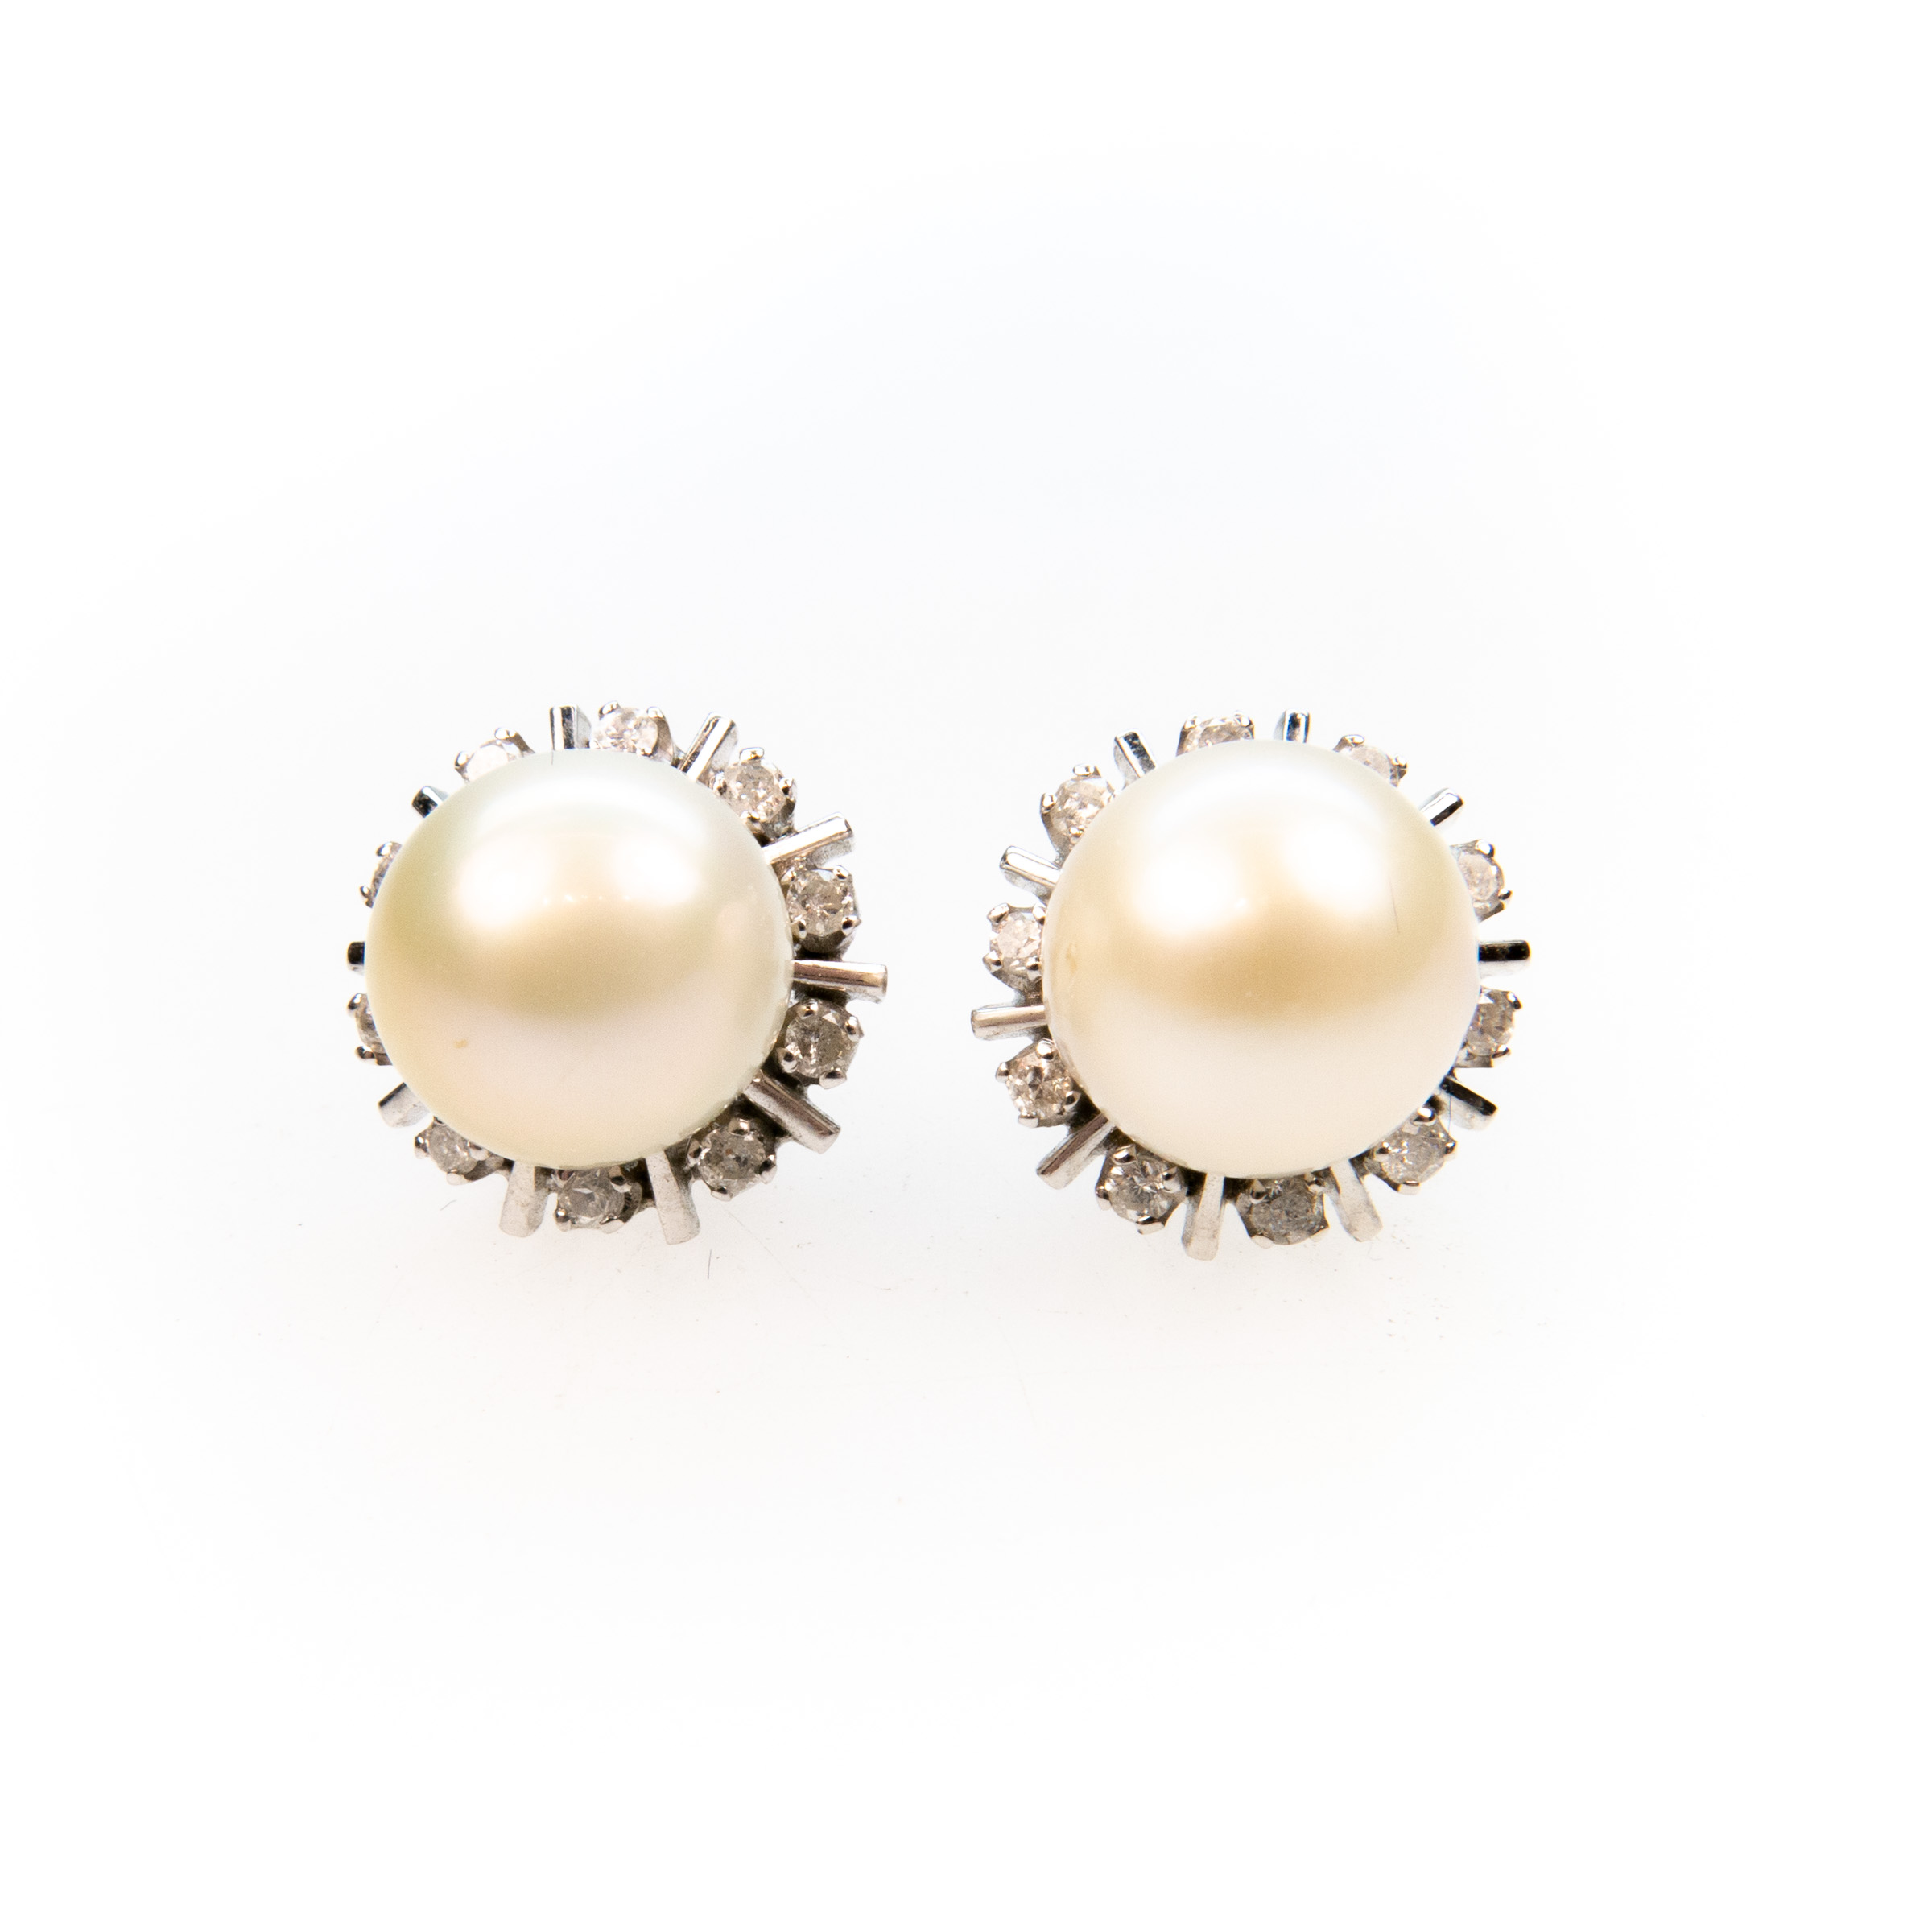 Pair Of 14K White Gold Button Earrings